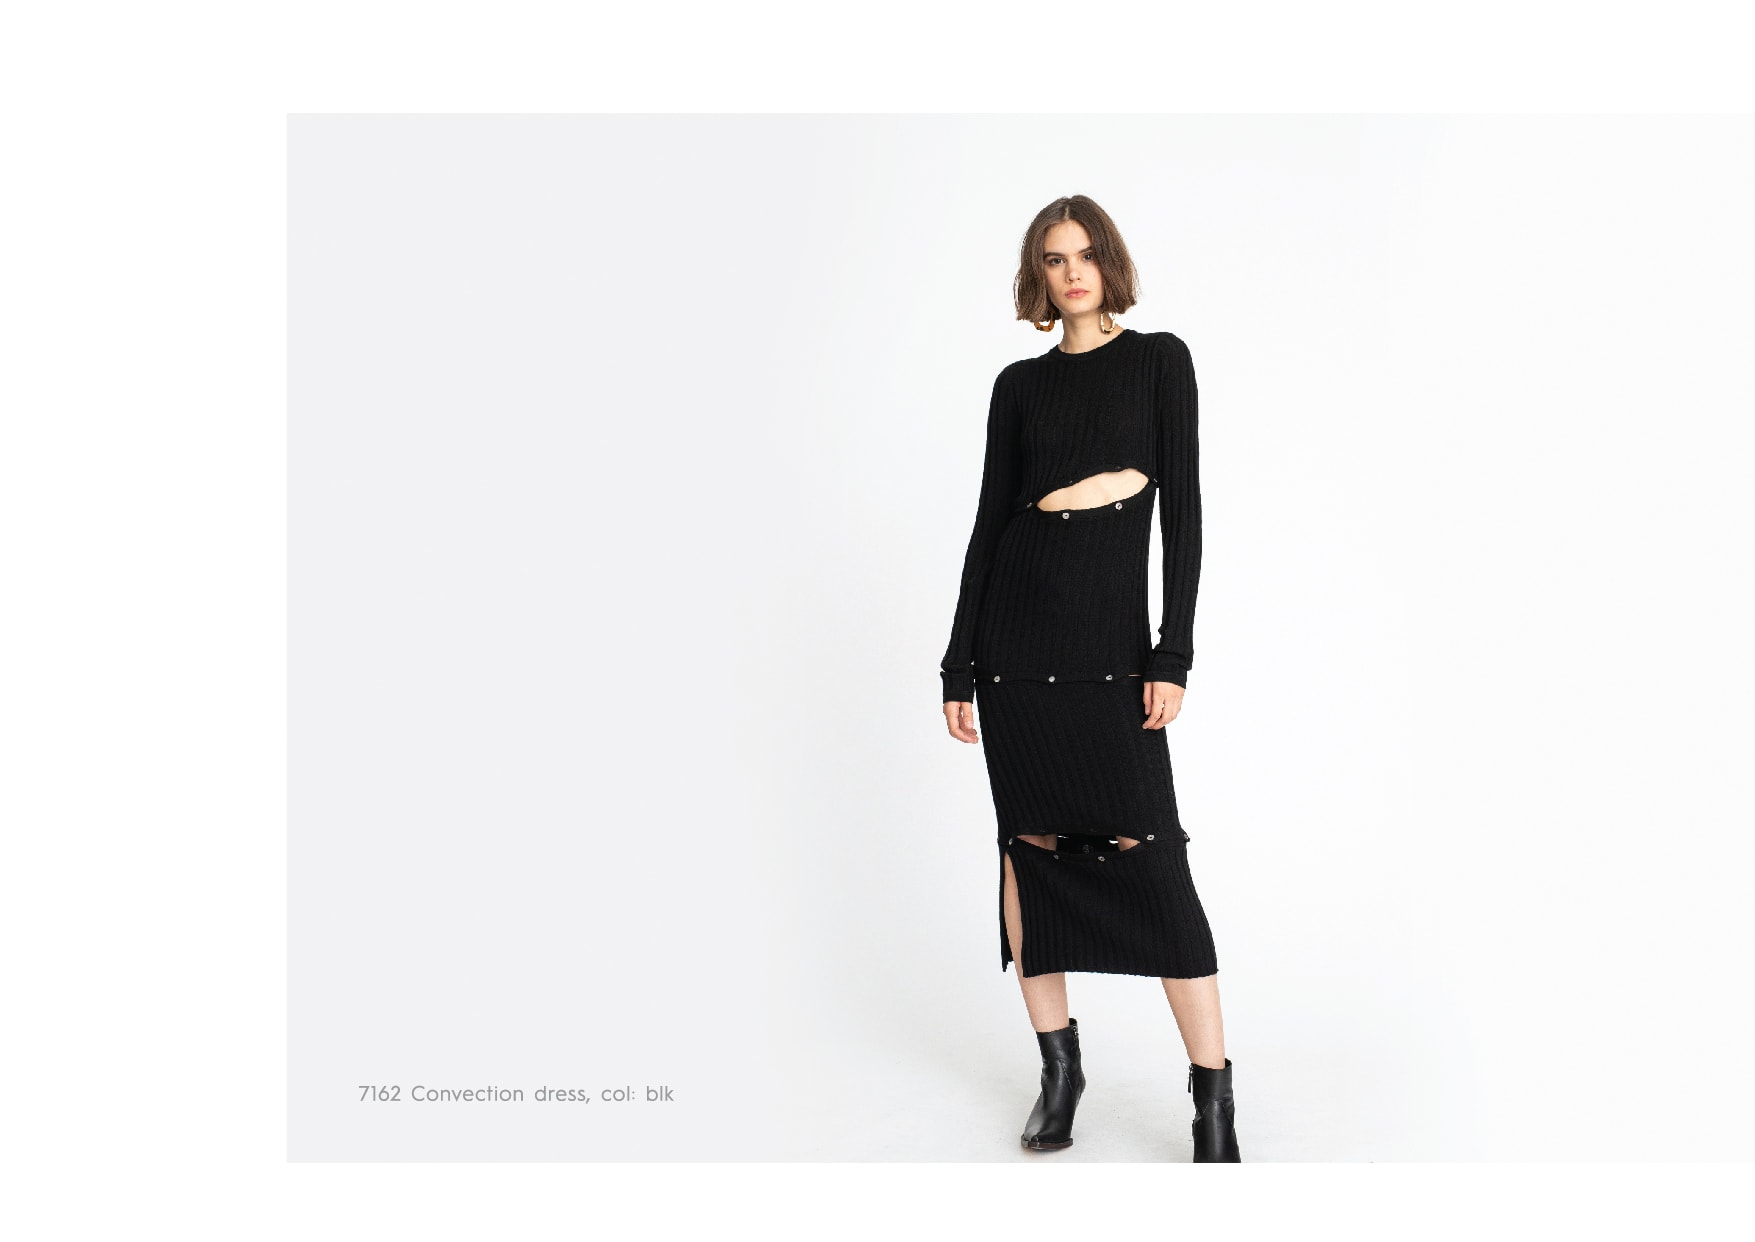 Taylor AW19 Precollection Lookbook 26